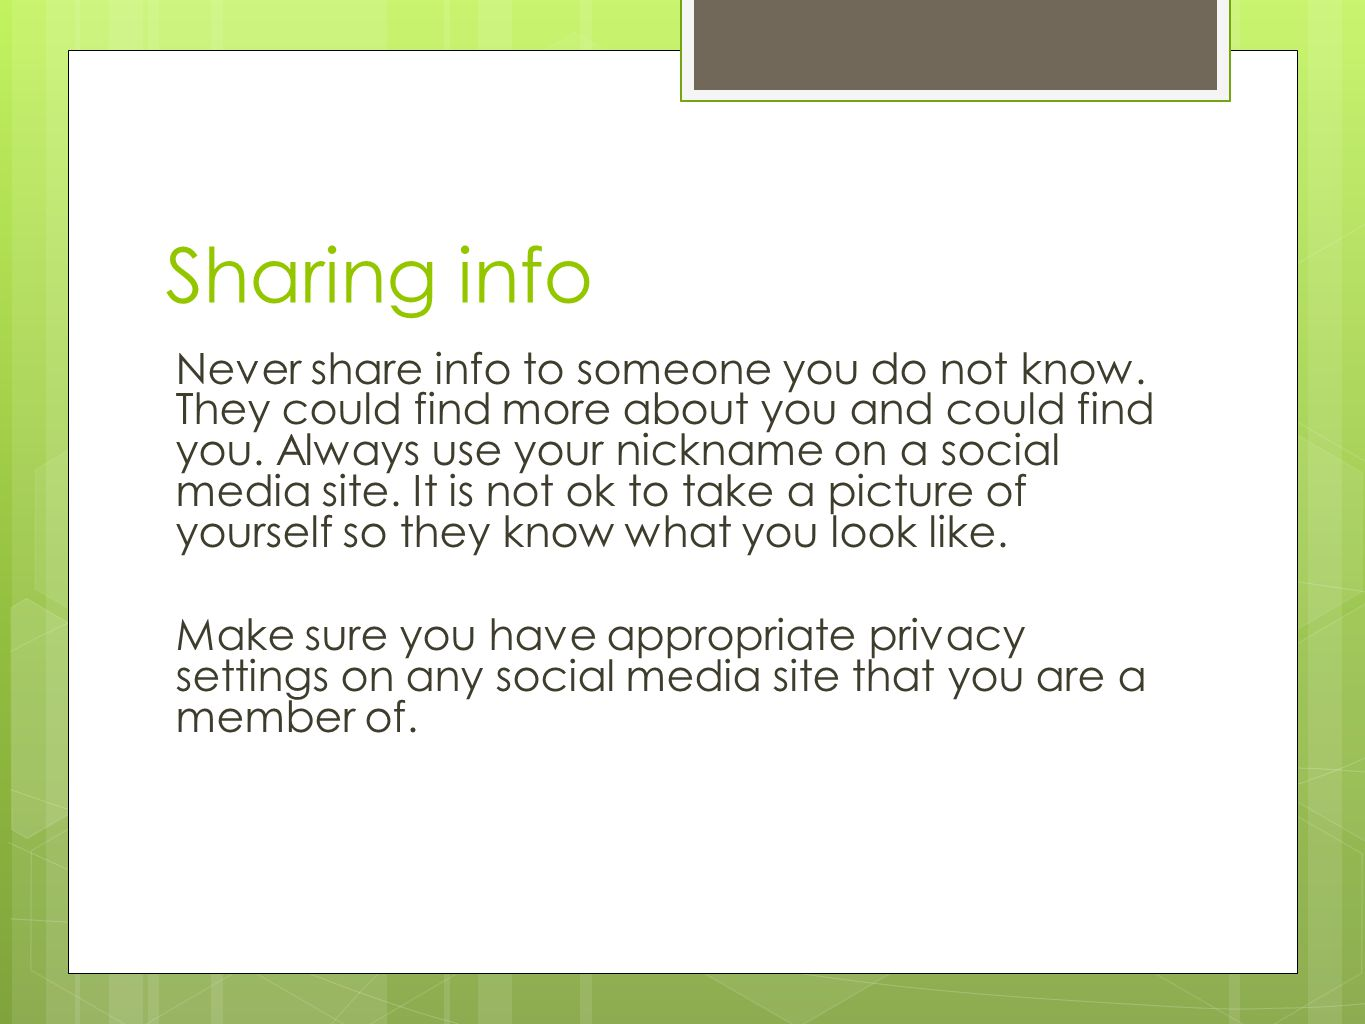 Sharing info Never share info to someone you do not know. They could find more about you and could find you. Always use your nickname on a social medi